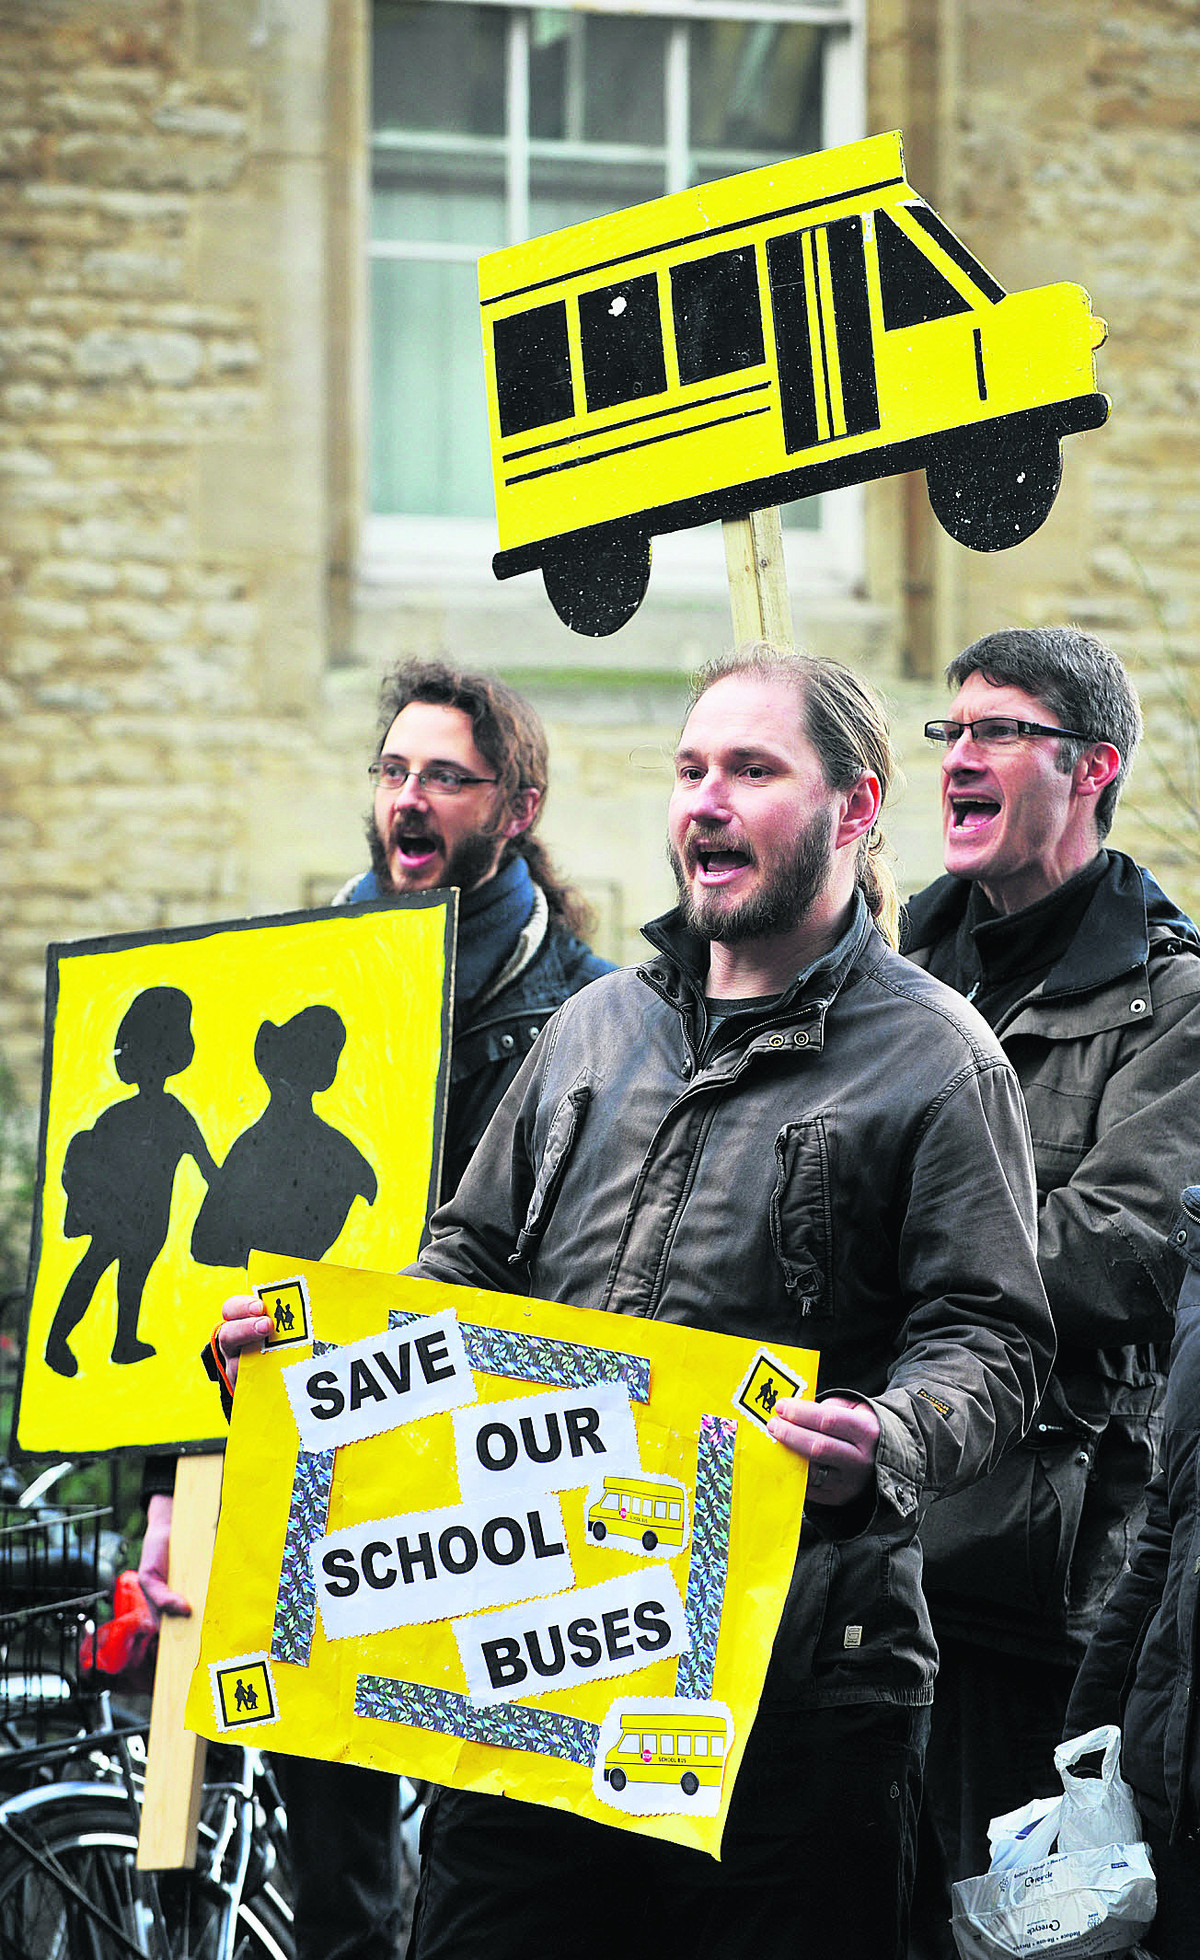 Fears for schools as county council presses ahead with free bus axe